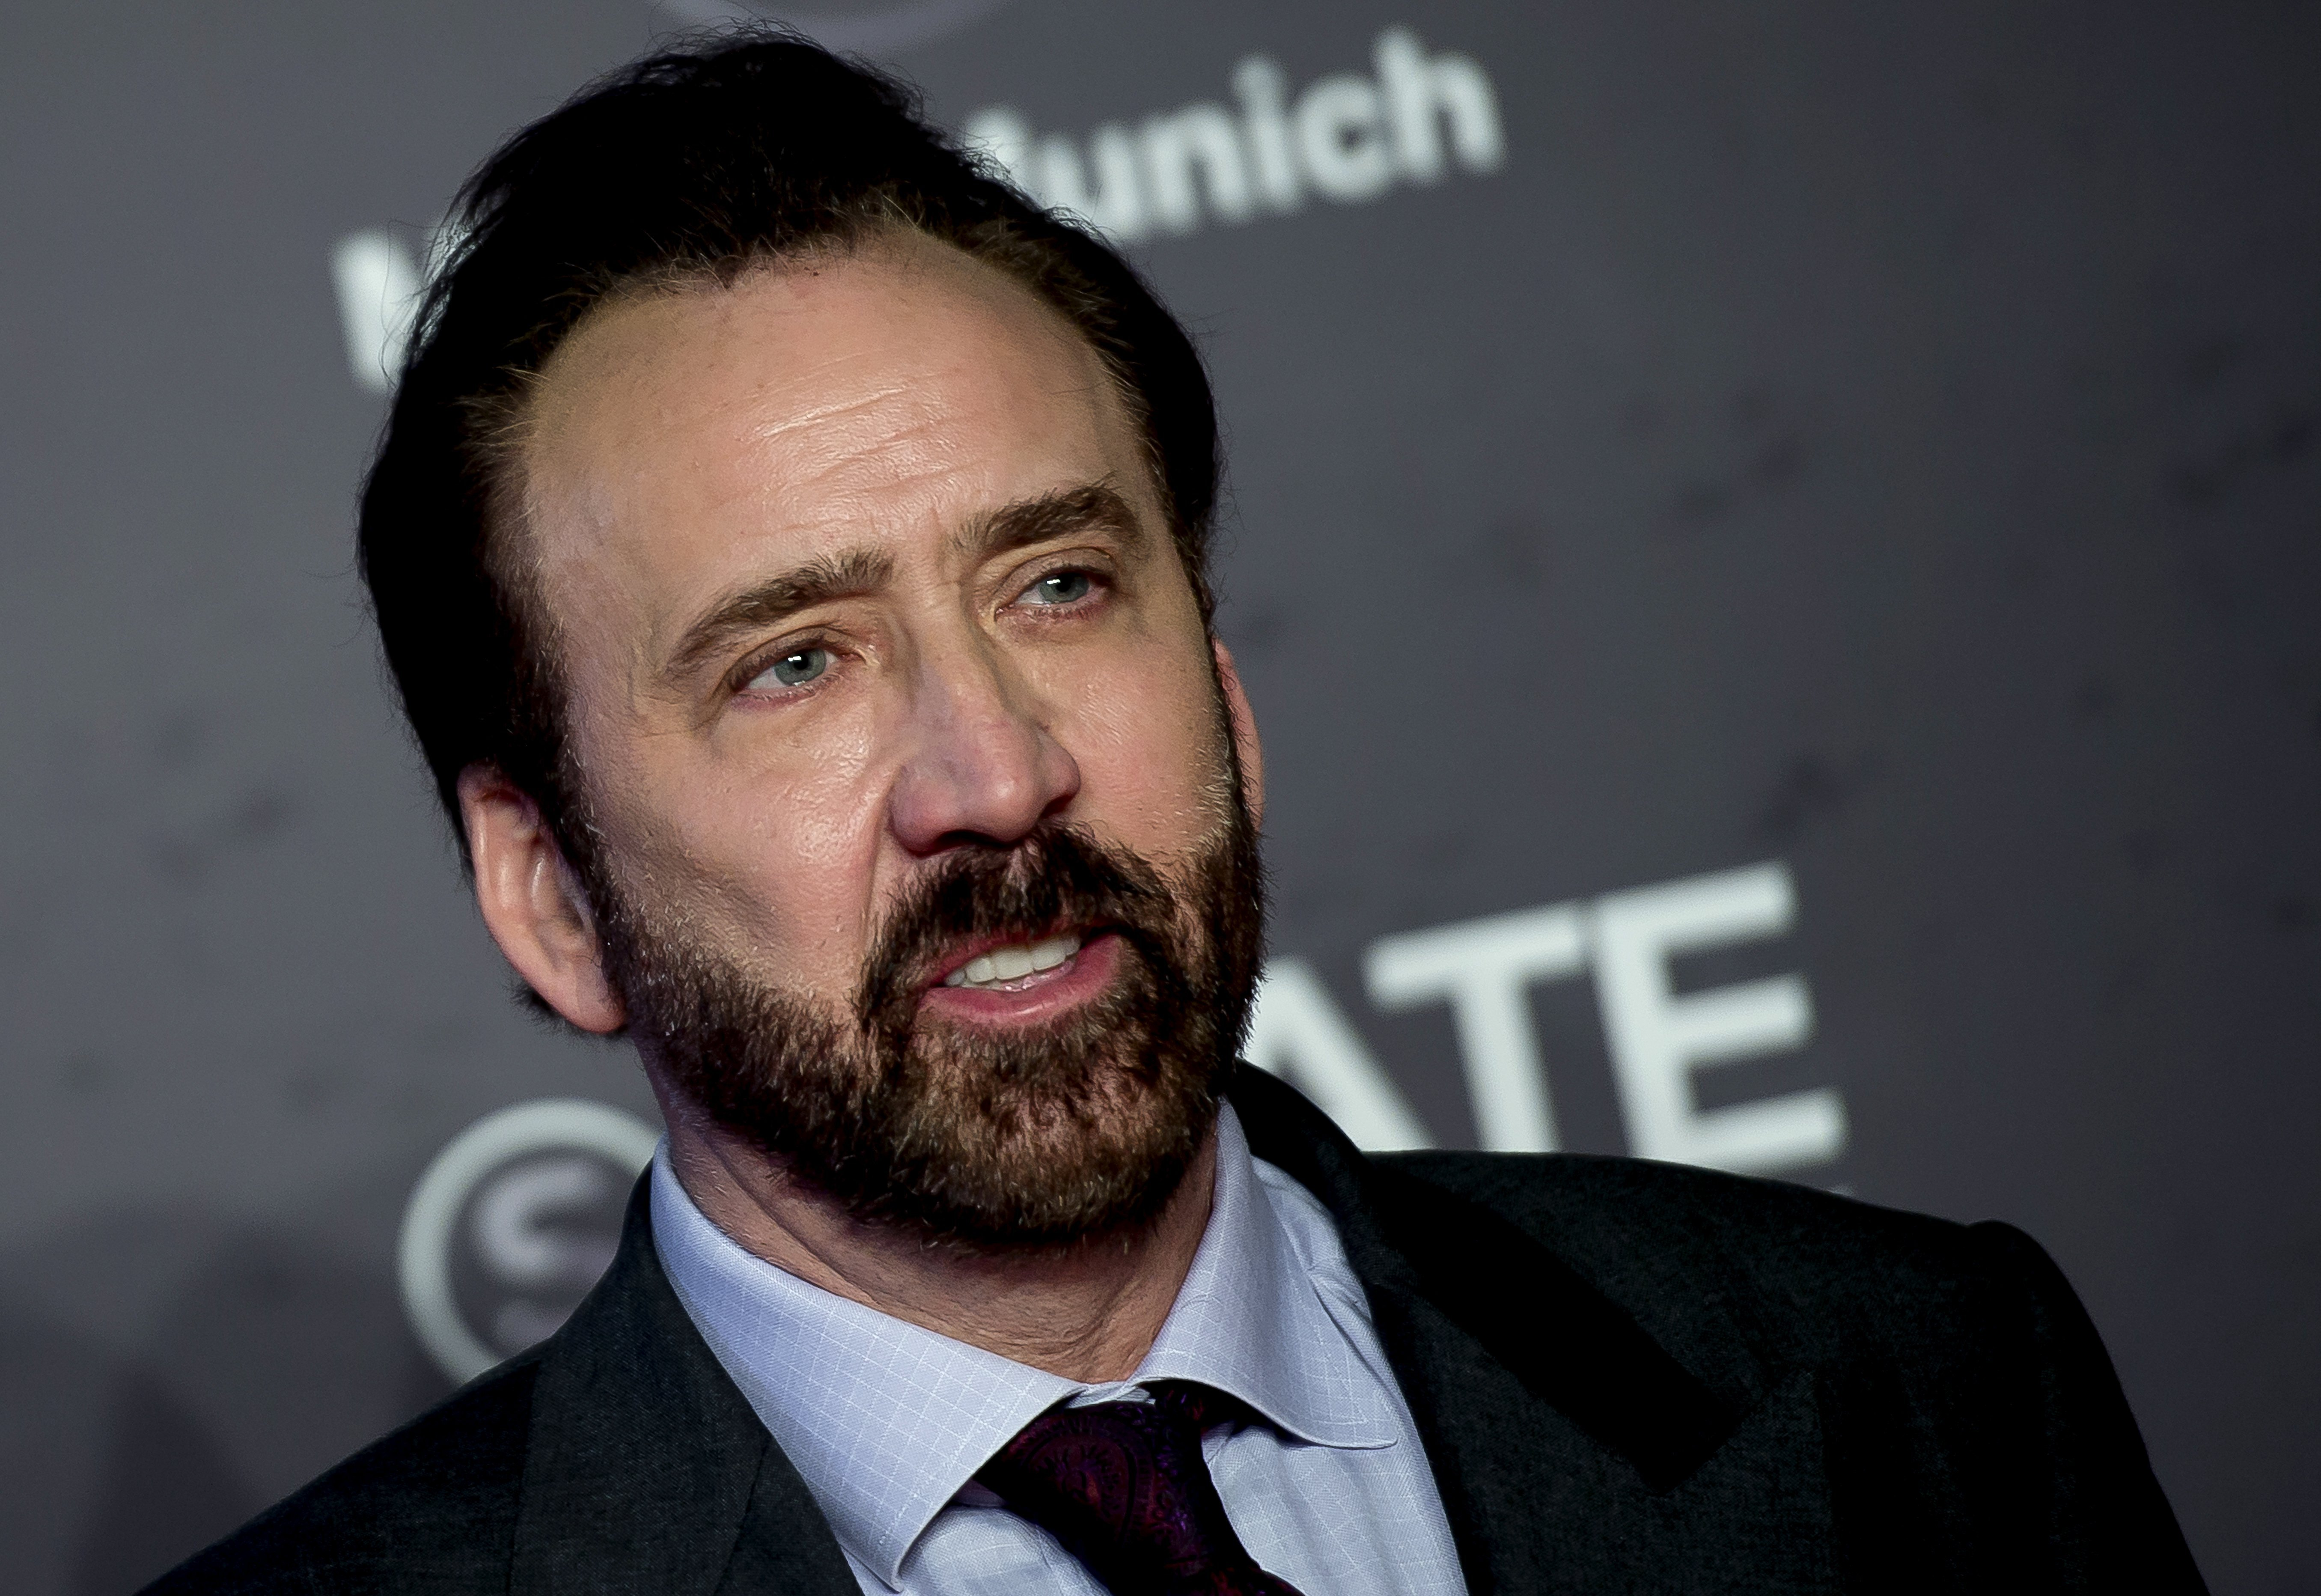 Nicholas Cage attends during `Mandy´ red Carpet at Sitges Film Festival on October on October 6, 2018, in Sitges, Spain  | Photo: Getty Images.